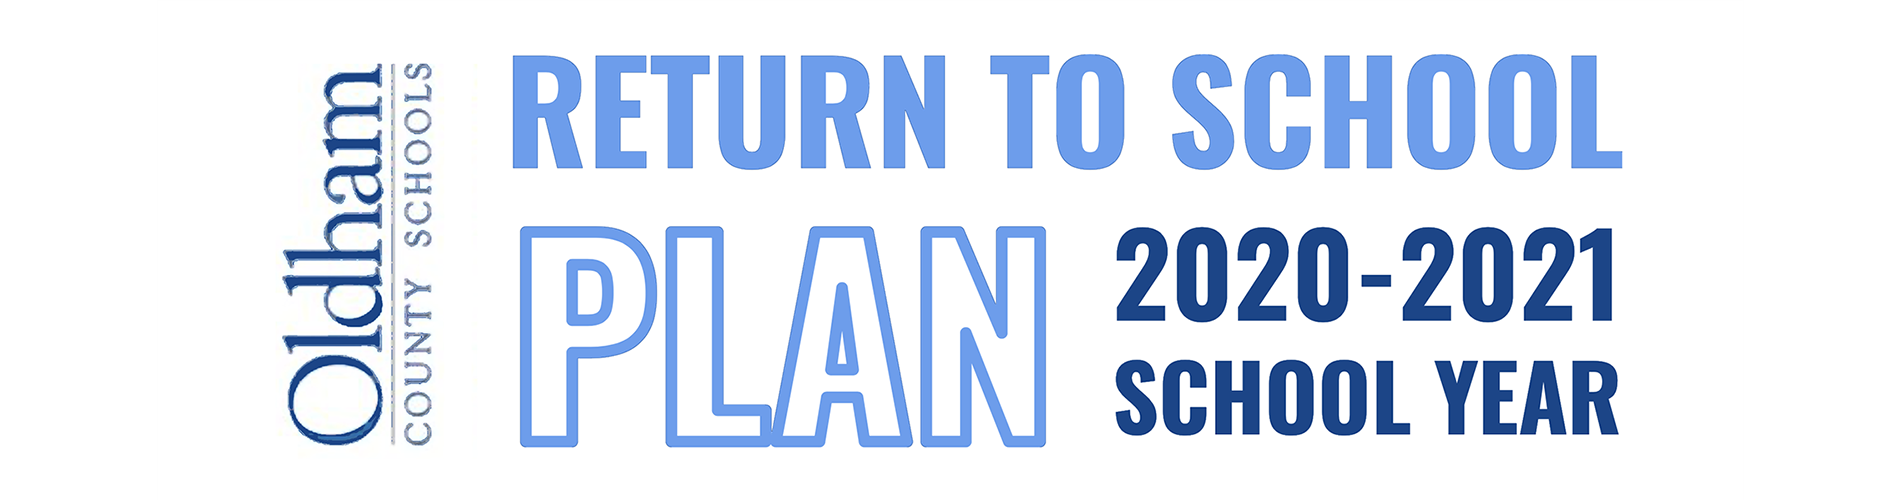 Return to School Plan 2020-2021 School Year